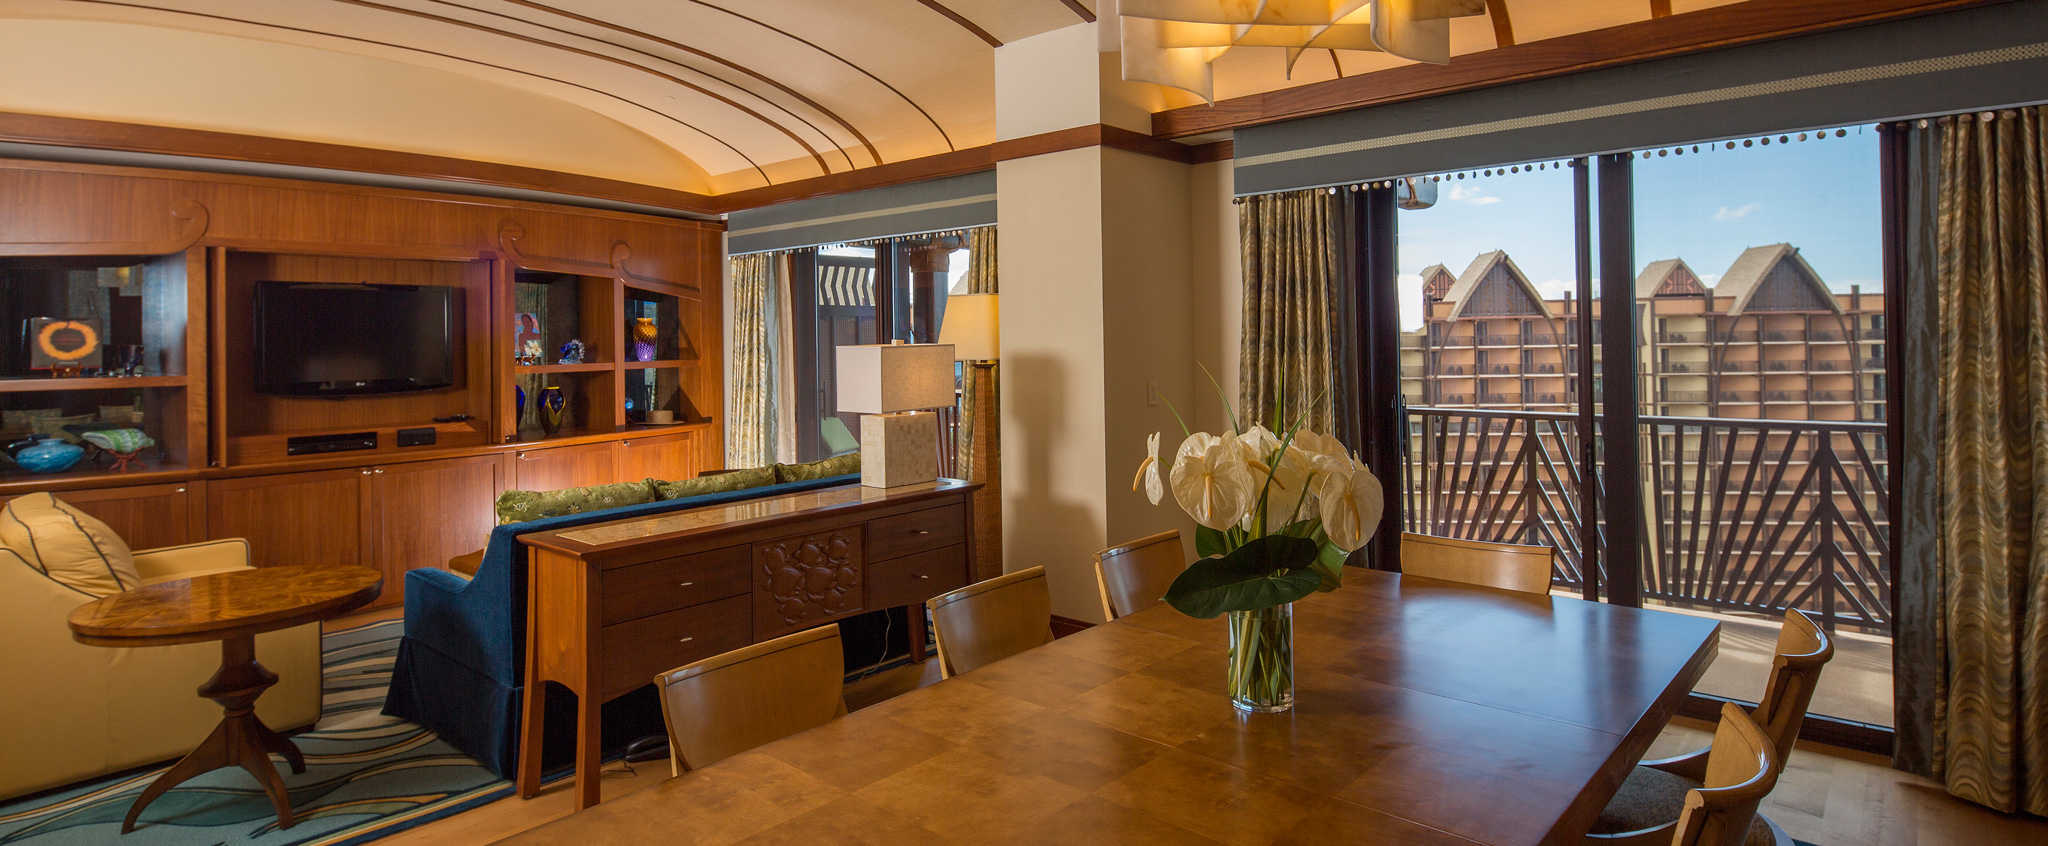 The living area of the suite includes an entertainment center, plush seating and the dining area